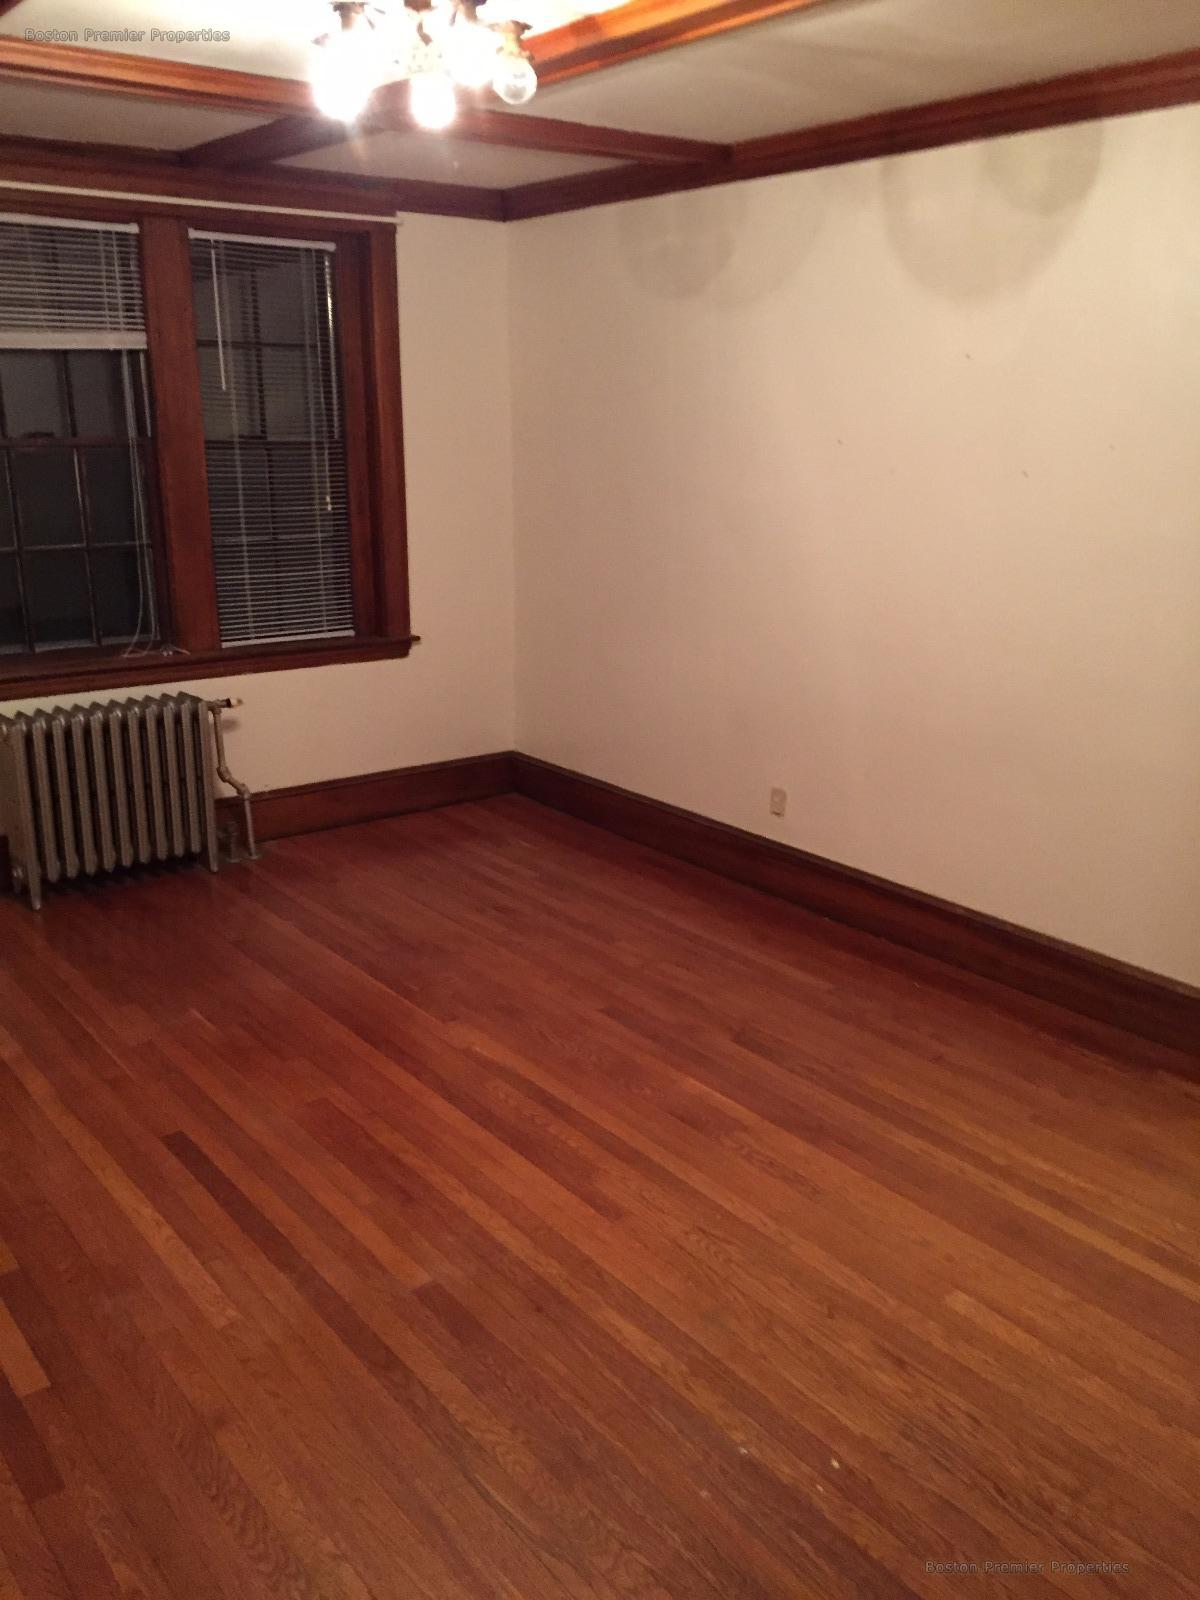 1 Bed, 1 Bath apartment in Quincy for $1,550